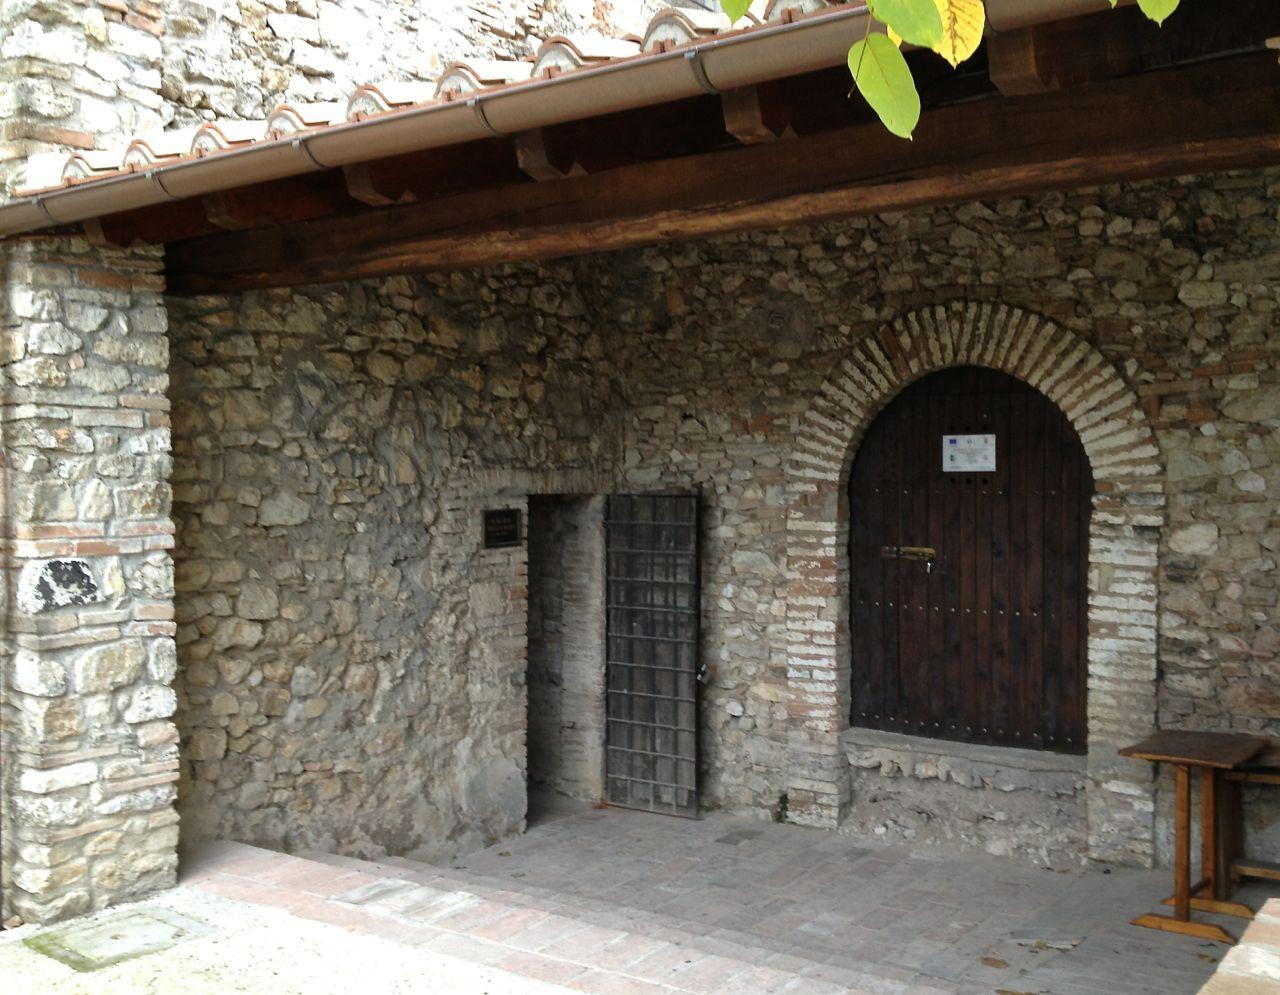 The little door to the left reveals the secret underground world of Narni